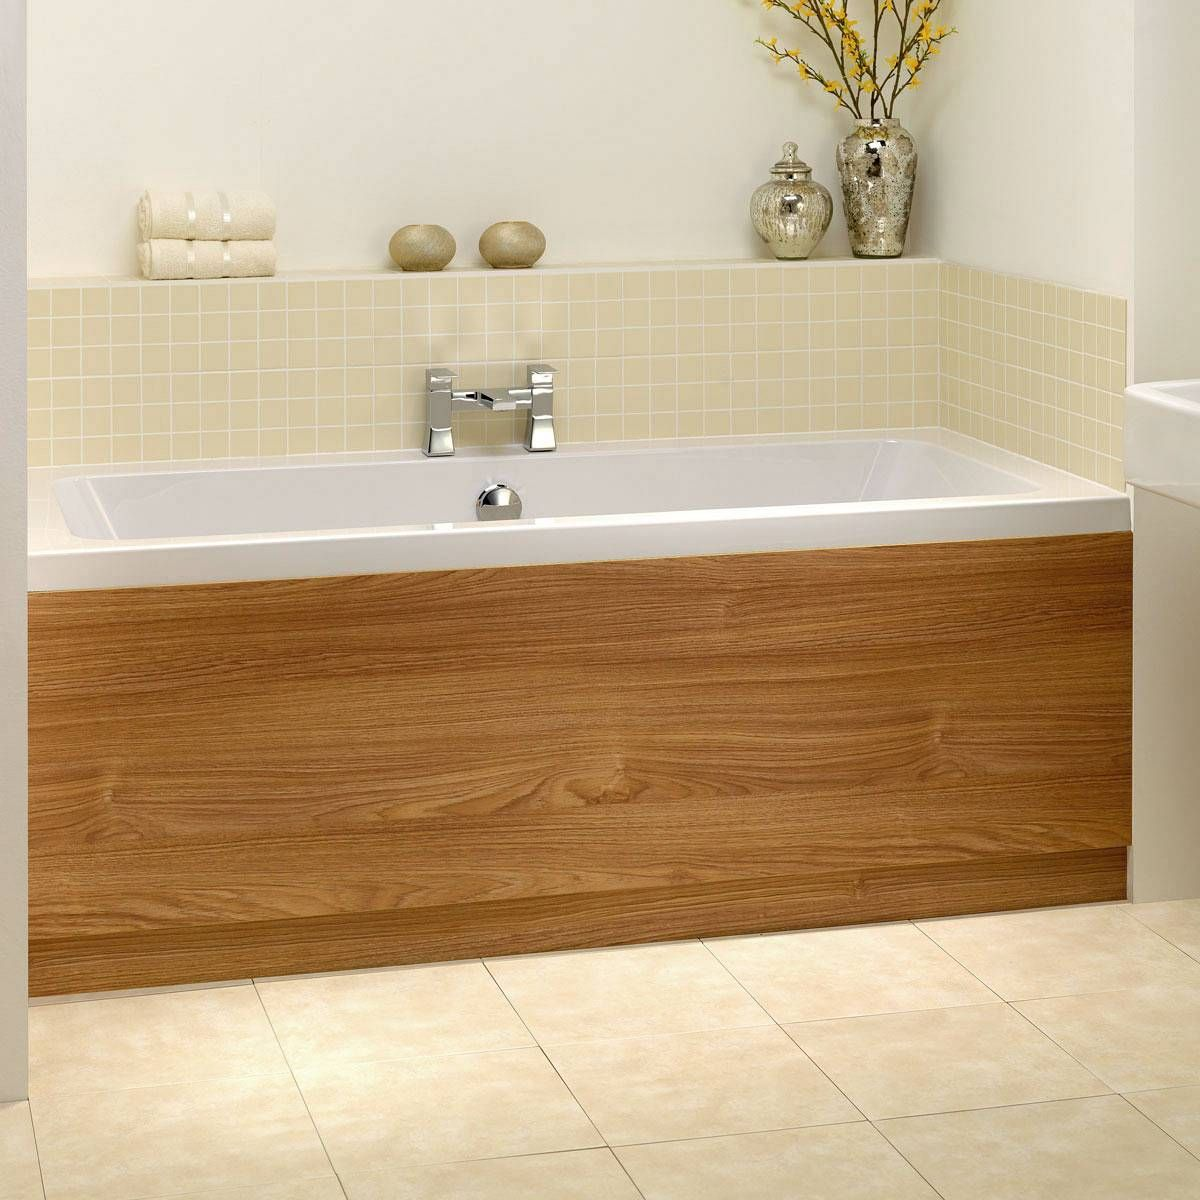 Oak Wooden Bath Panel 1700 Victoria 49 Or In White Matches The Sink Units Babashkin